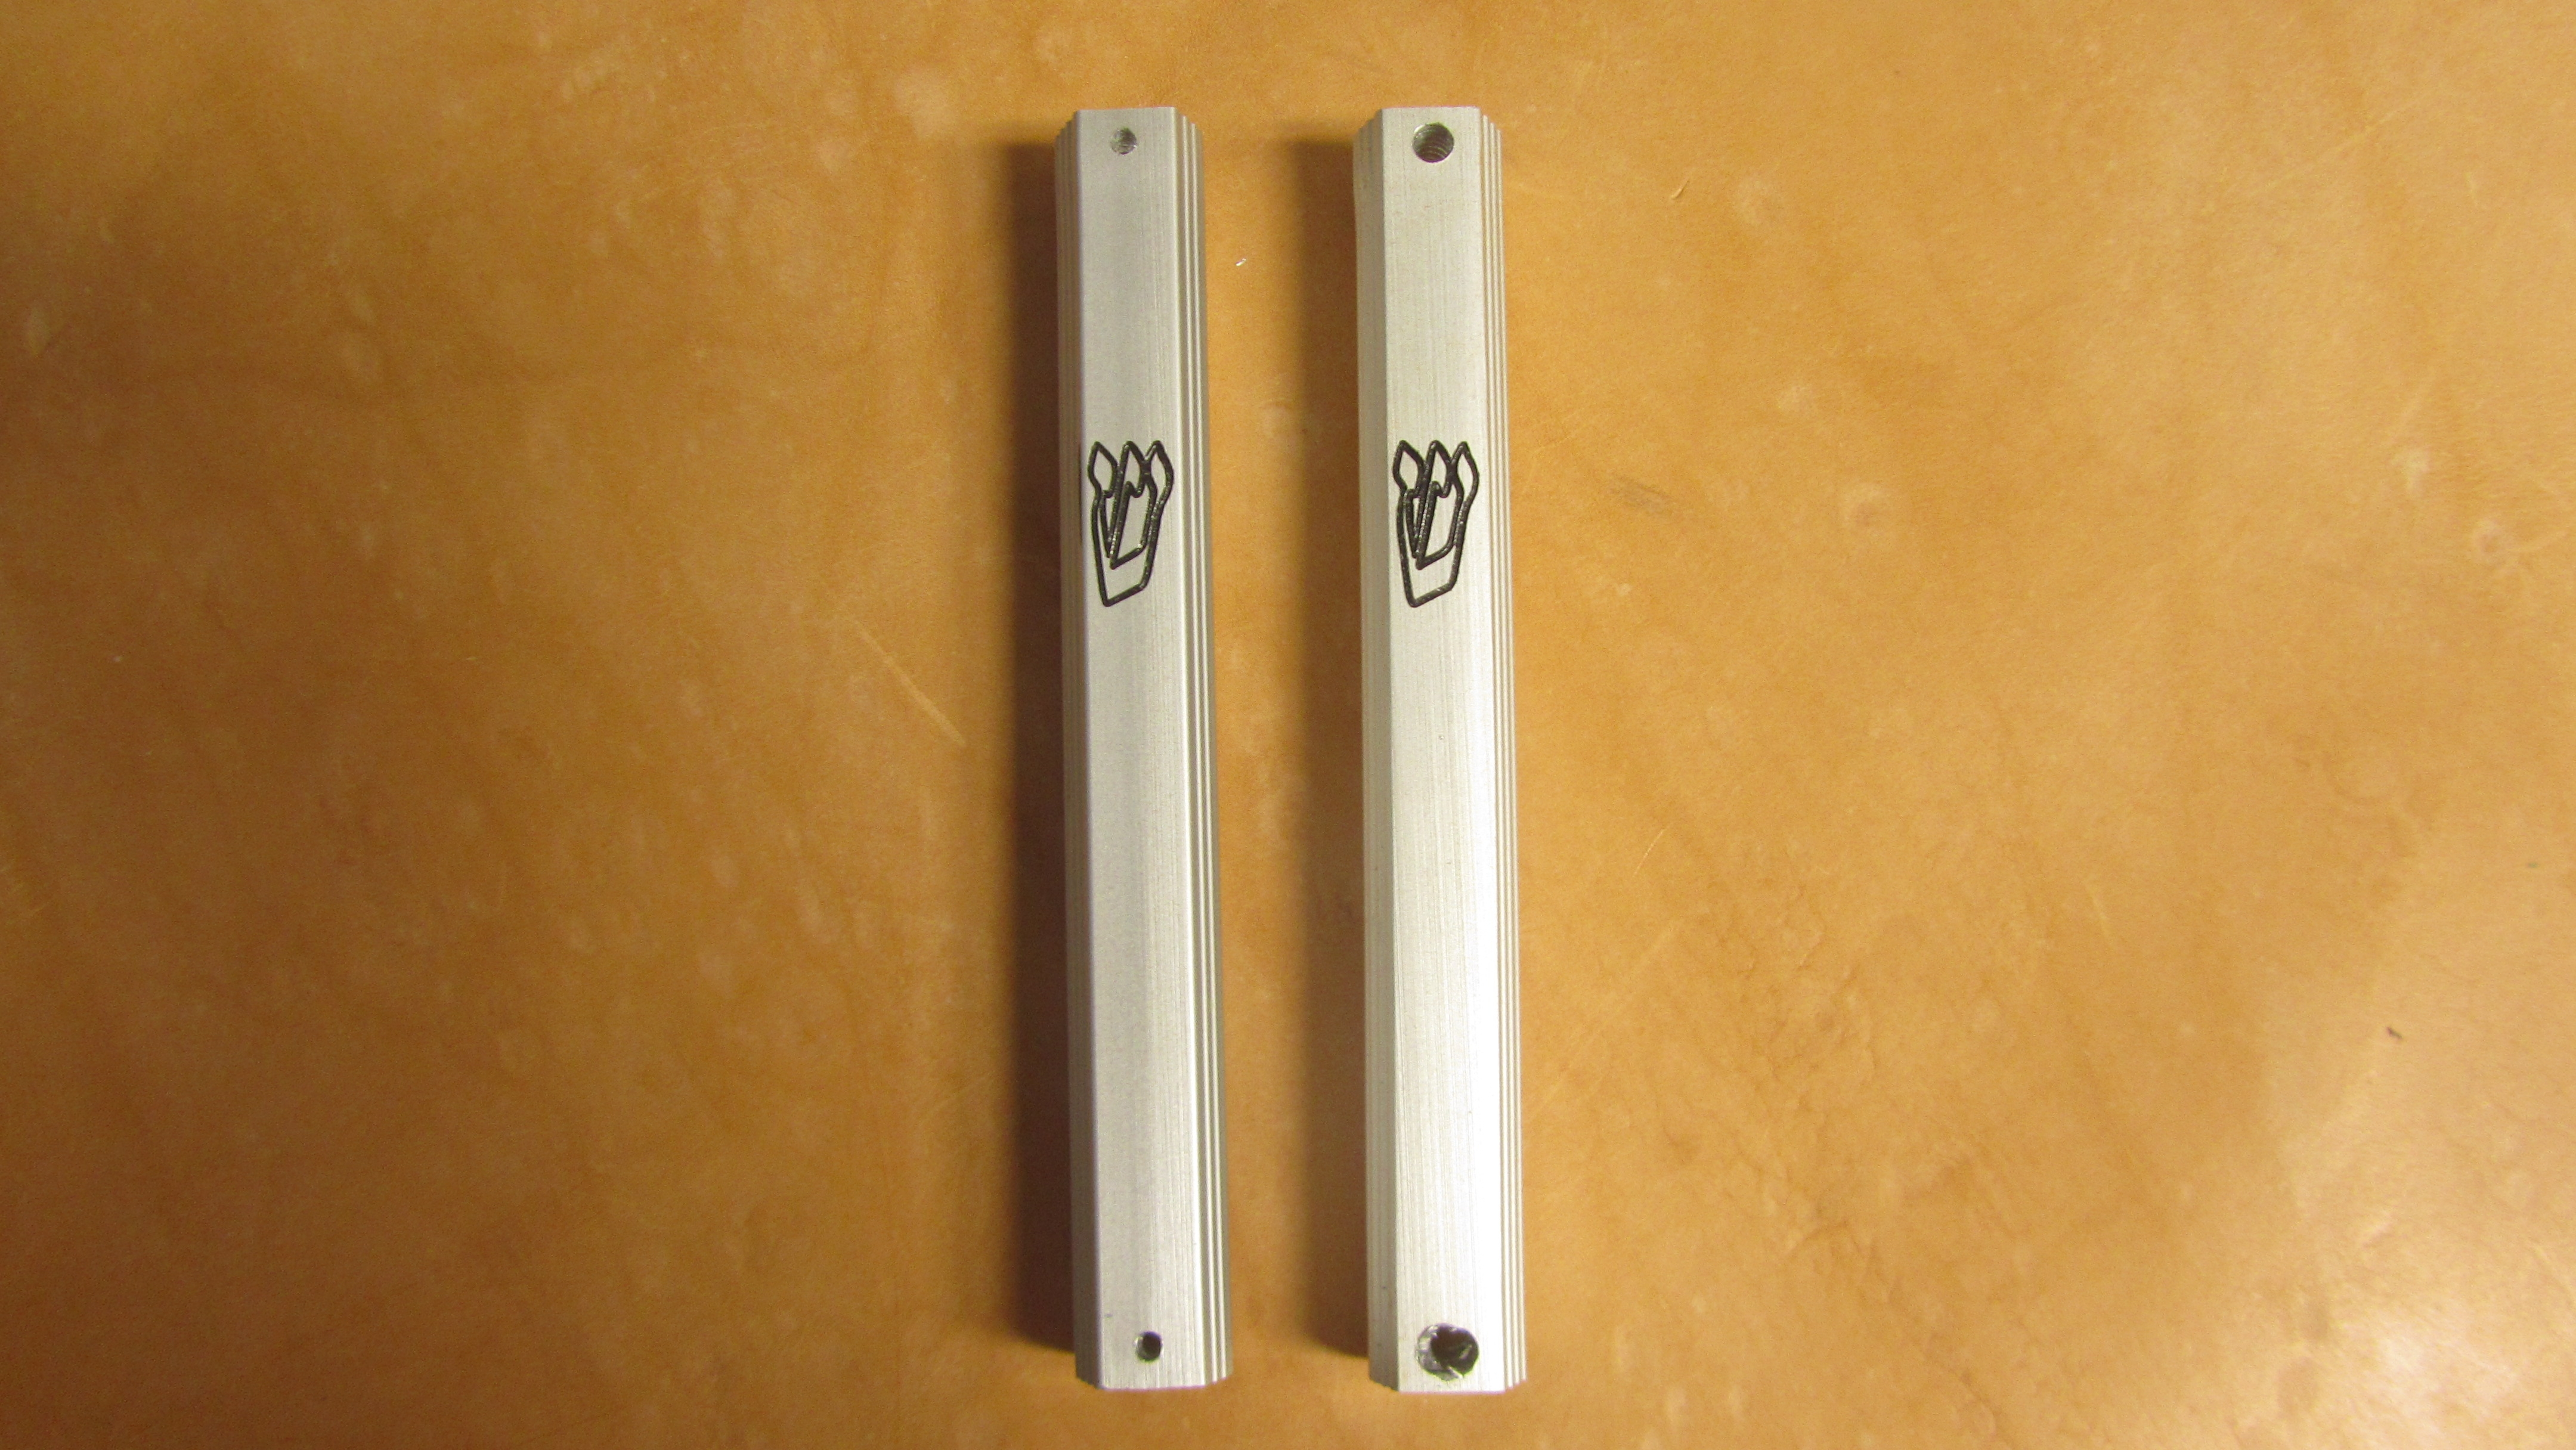 Metal mezuzah case on the left withstandard screw holes right with enlarged screw holes for & Mezuzah Checking Mezuza House Calls Mezuzos House Calls | Tefillin ...